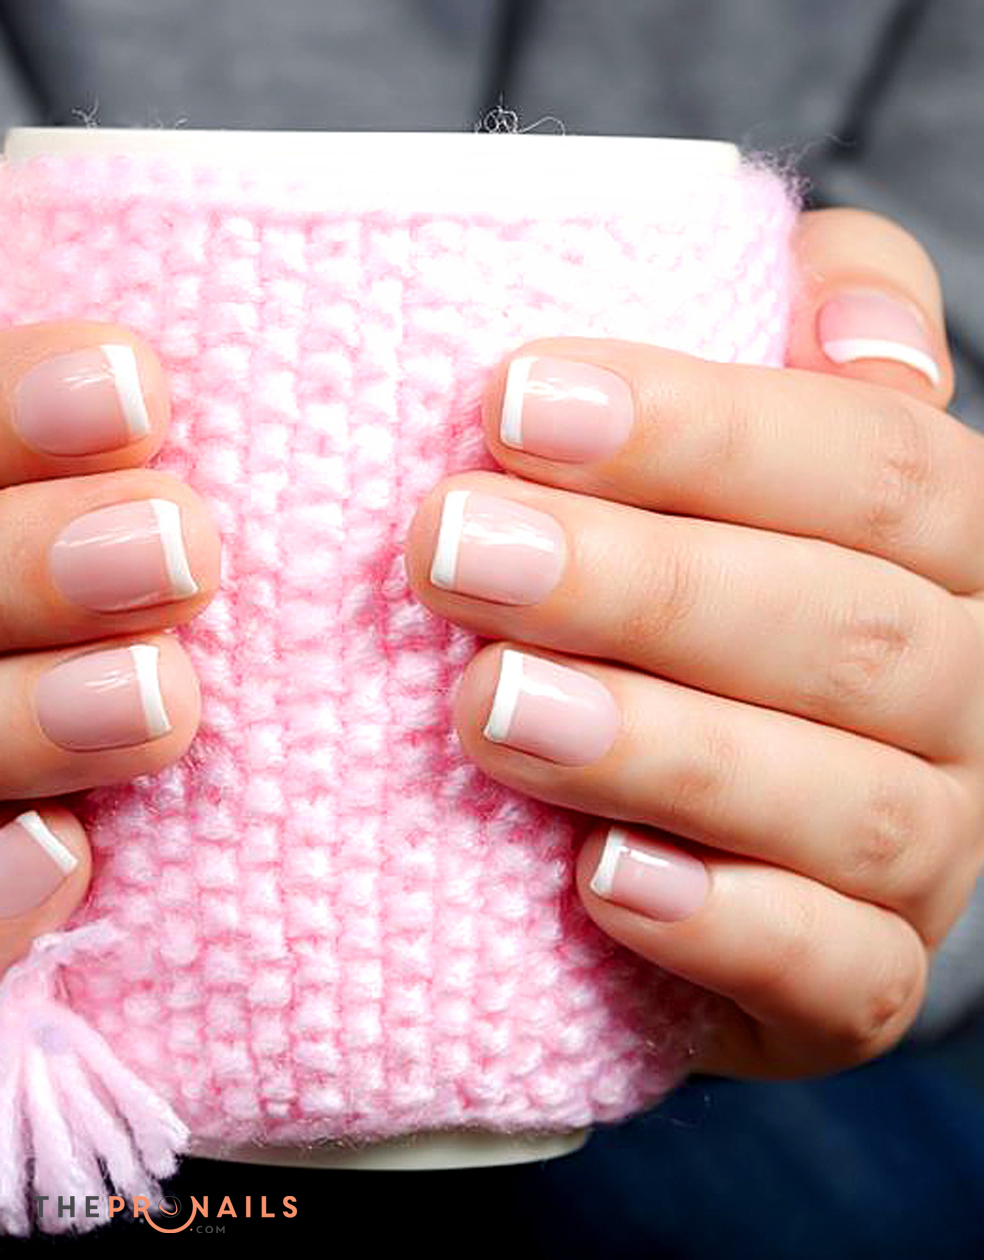 Angel Nails & Spa | Pink & White or Color Powder